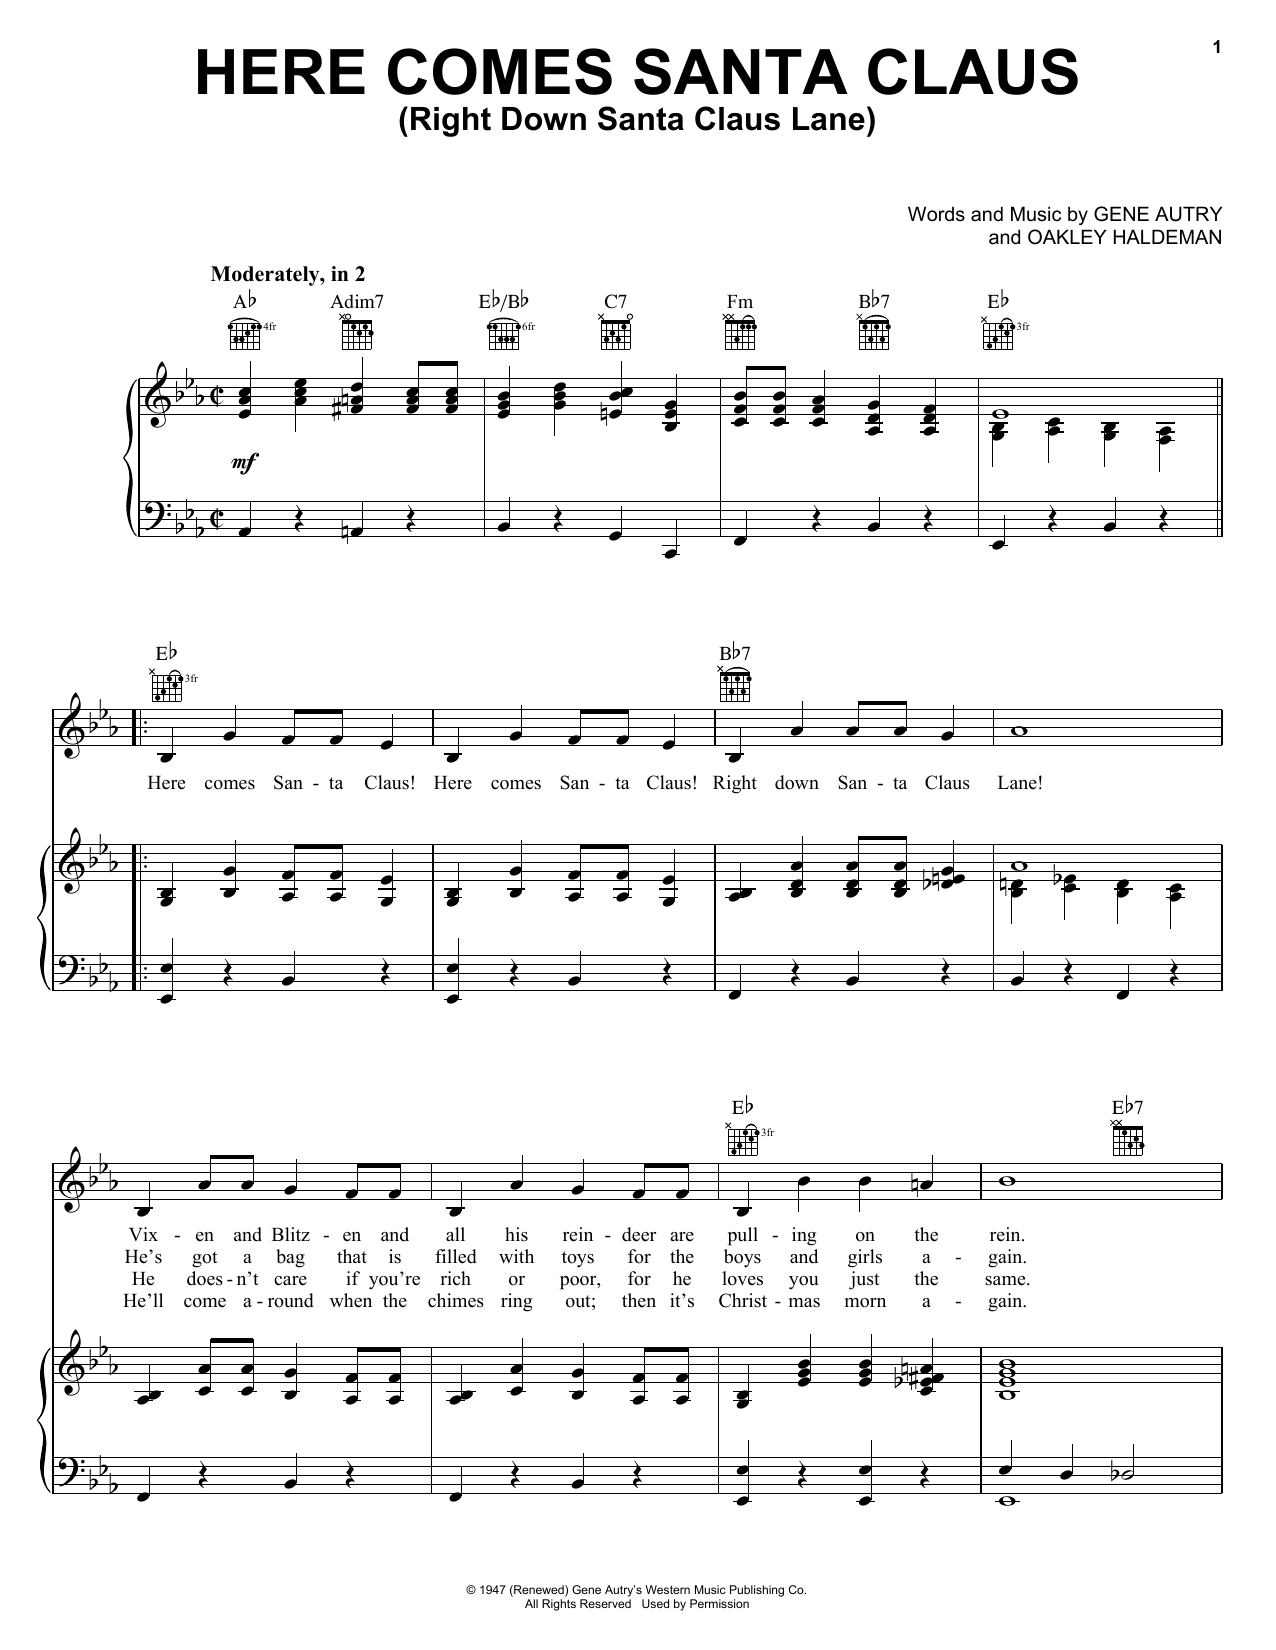 Gene Autry Here Comes Santa Claus (Right Down Santa Claus Lane) sheet music notes and chords. Download Printable PDF.